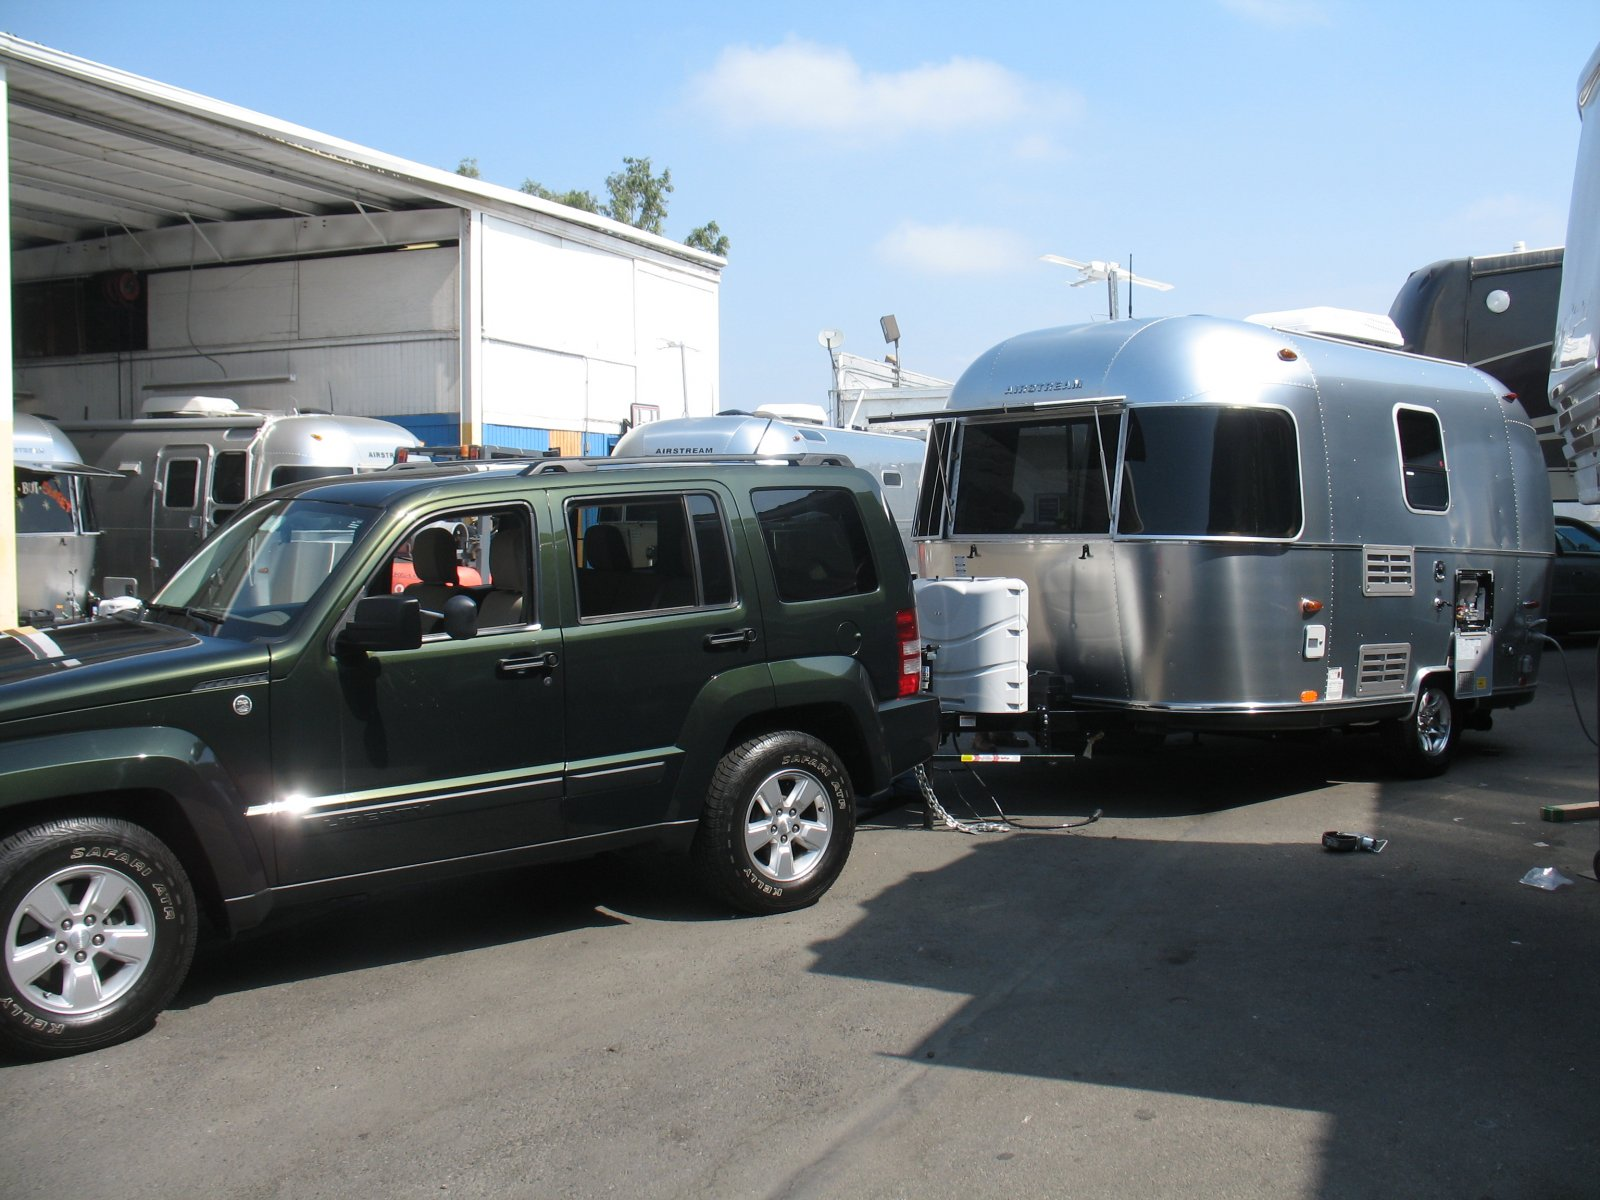 Click image for larger version  Name:Picking up the Airstream 006.jpg Views:44 Size:261.4 KB ID:164990